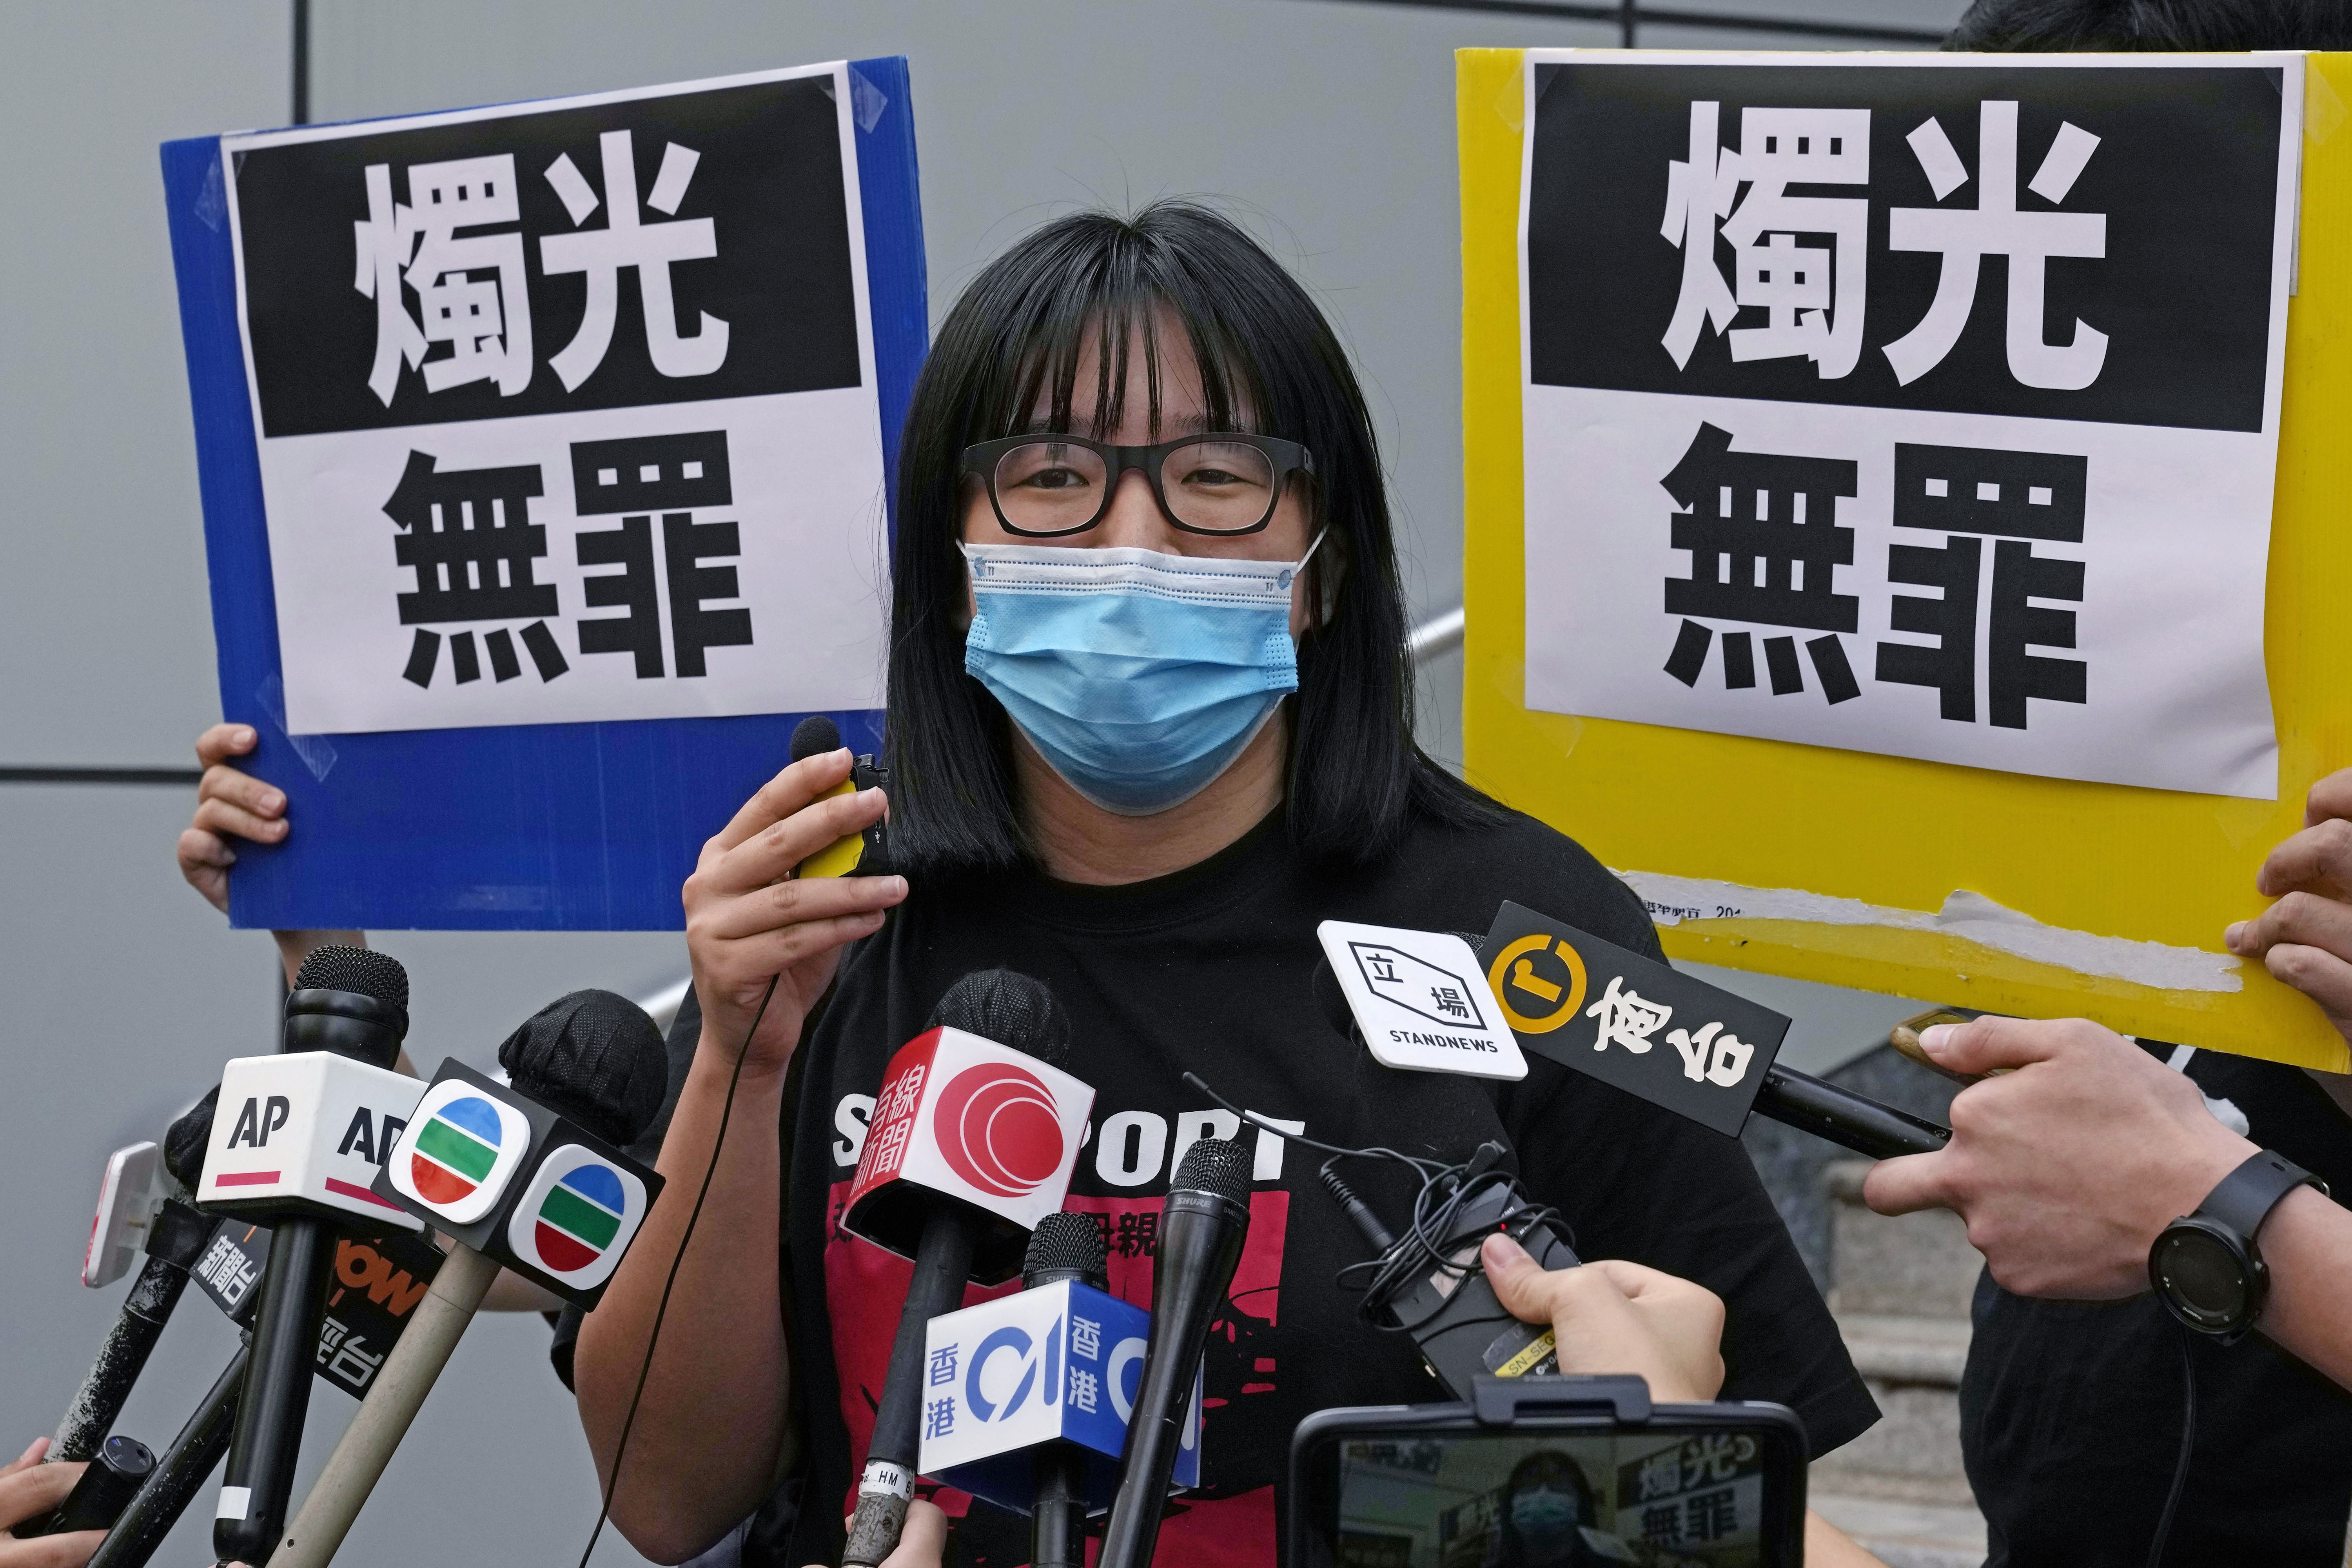 Chow Hang Tung, vice chairperson of the Hong Kong Alliance in Support of the Democratic Patriotic Movements of China, outside a police station in Hong Kong